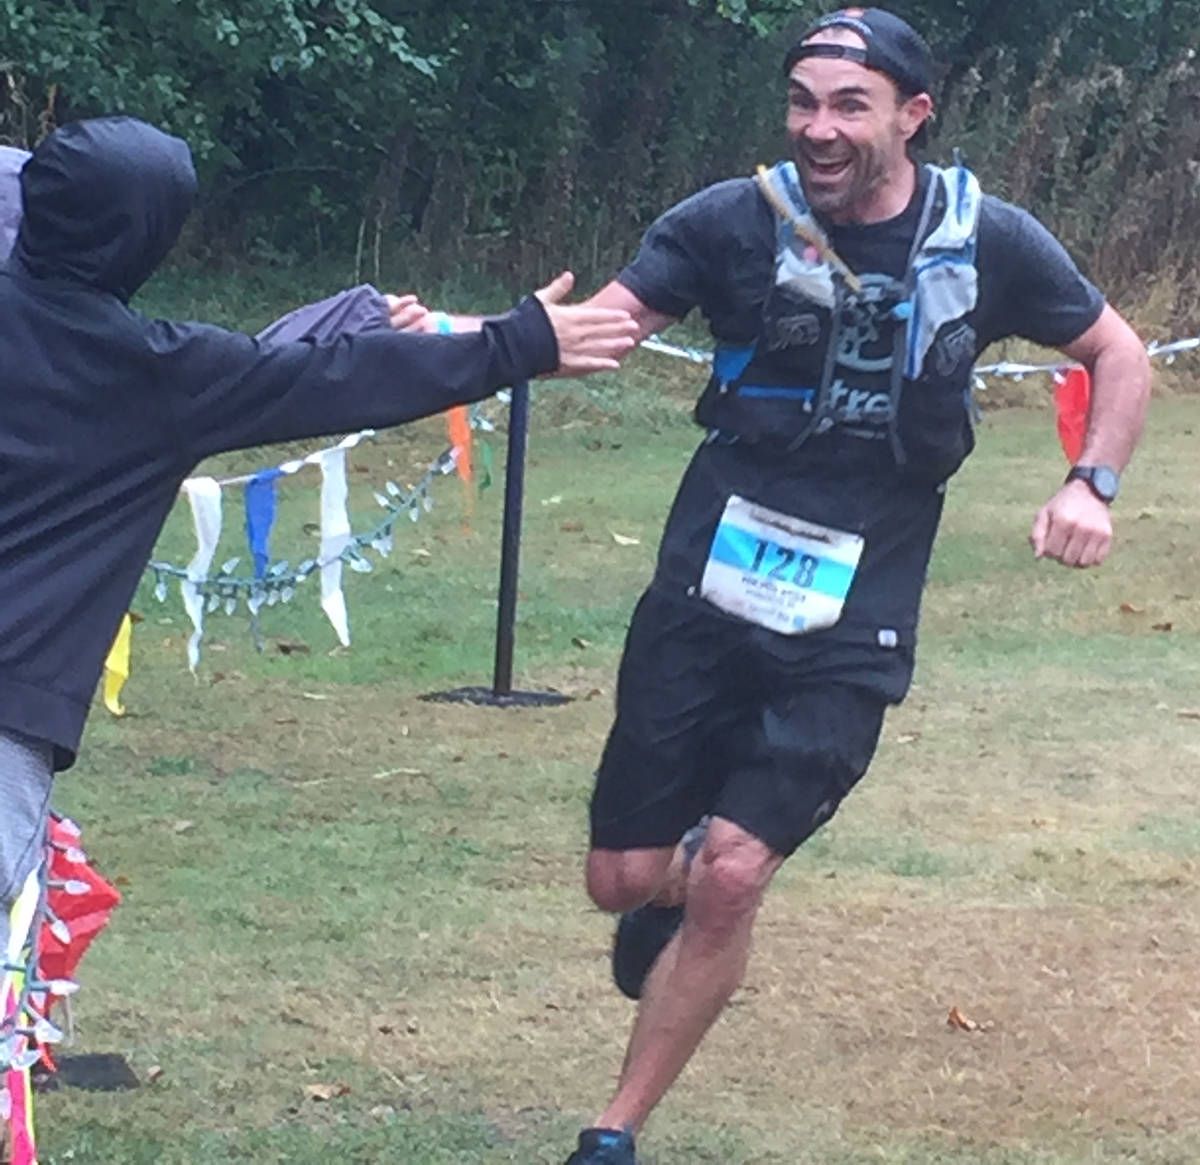 Trevor Coey finishes ninth overall at the 2017 Finlayson Arm 50km ultra marathon. (Photo courtesy of Trevor Coey)